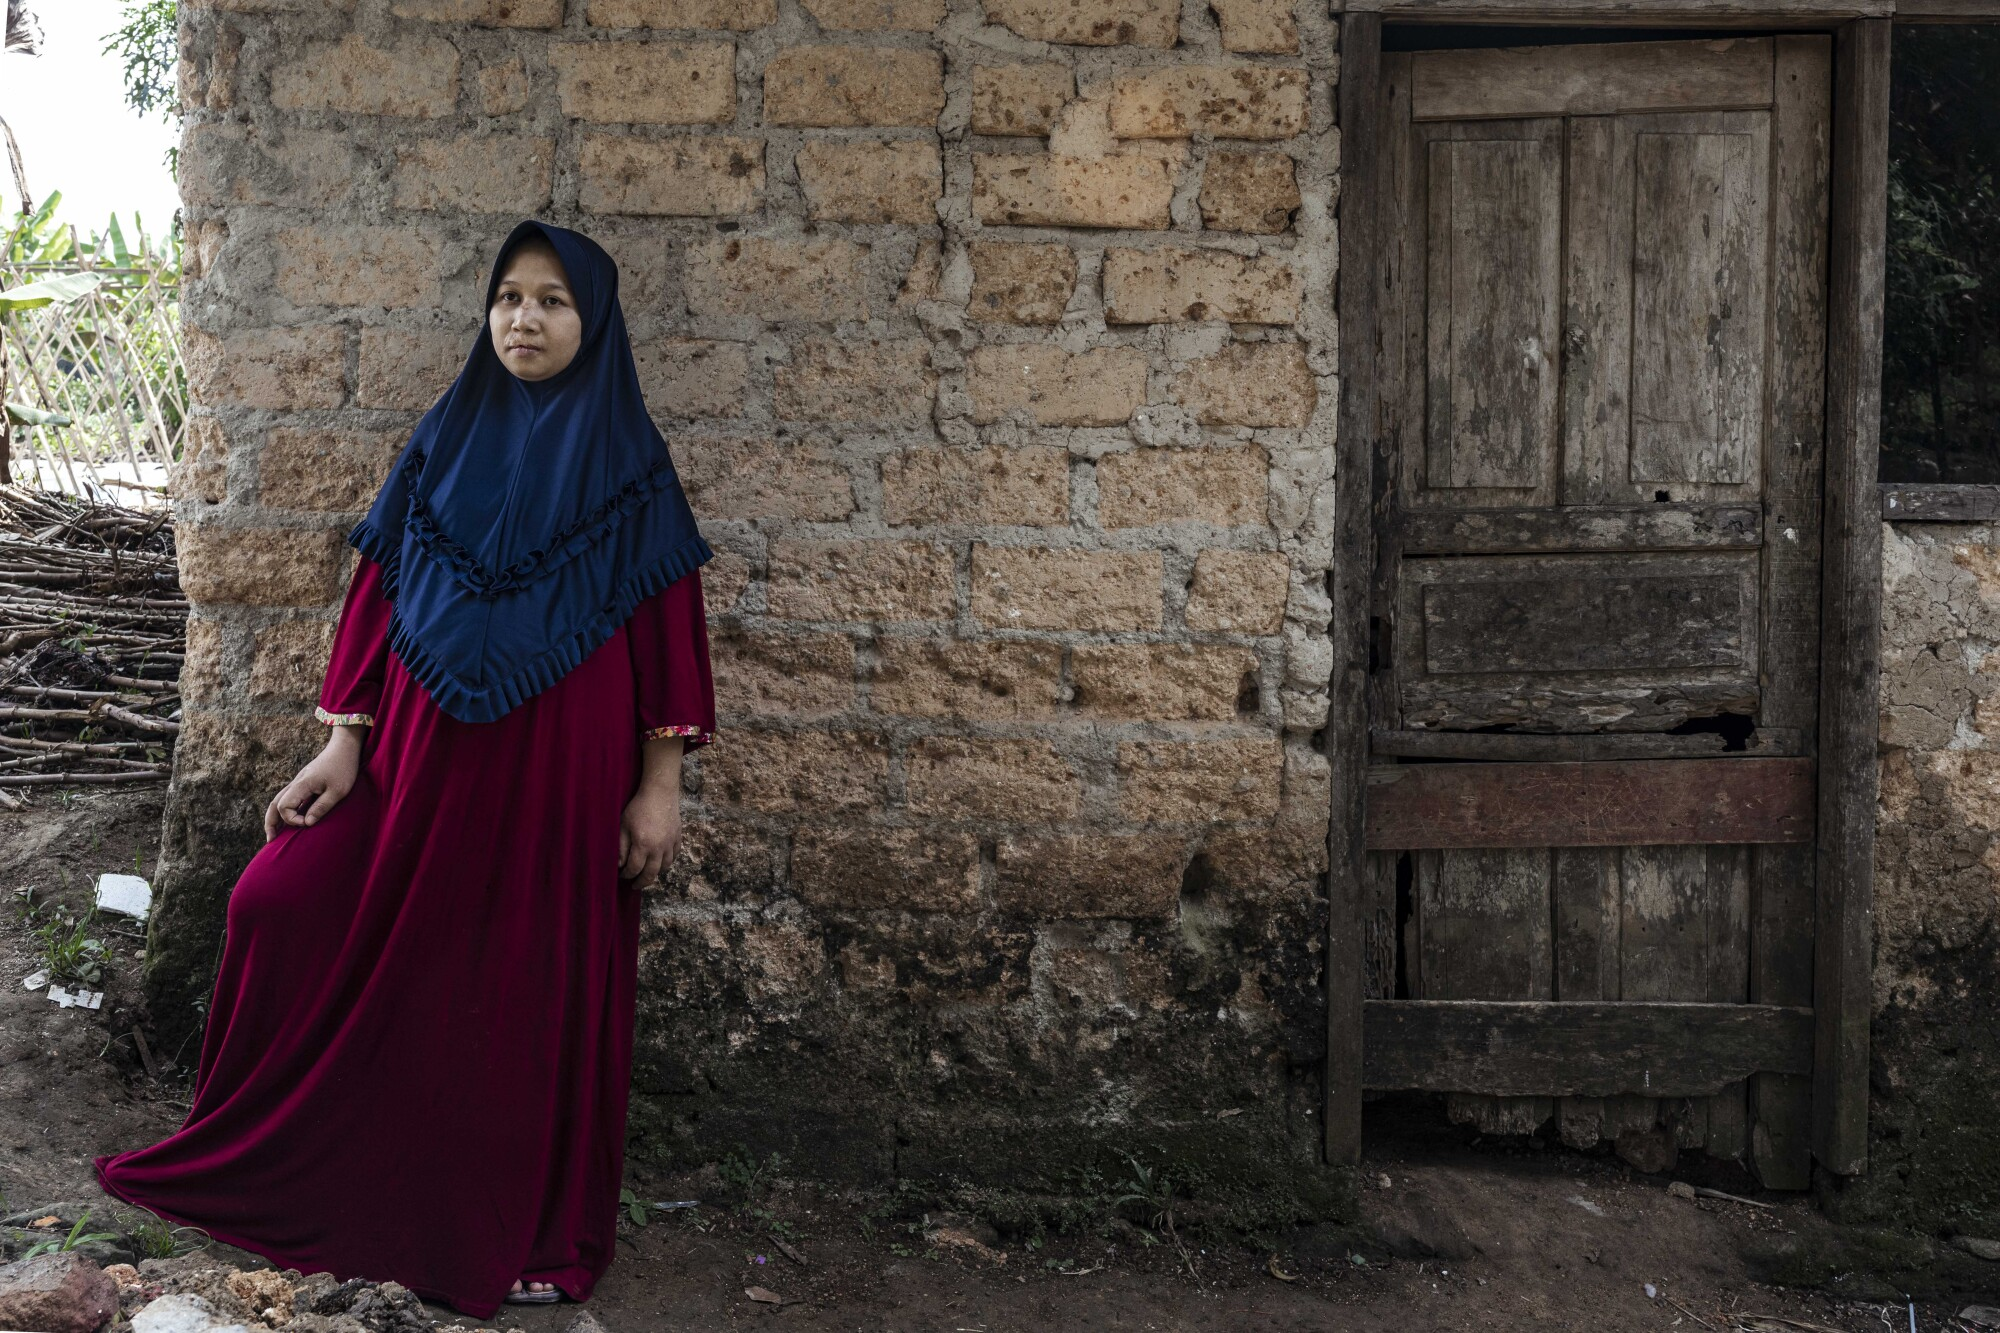 A woman in a red robe and blue hijab stands in front of a brick wall near a wooden door